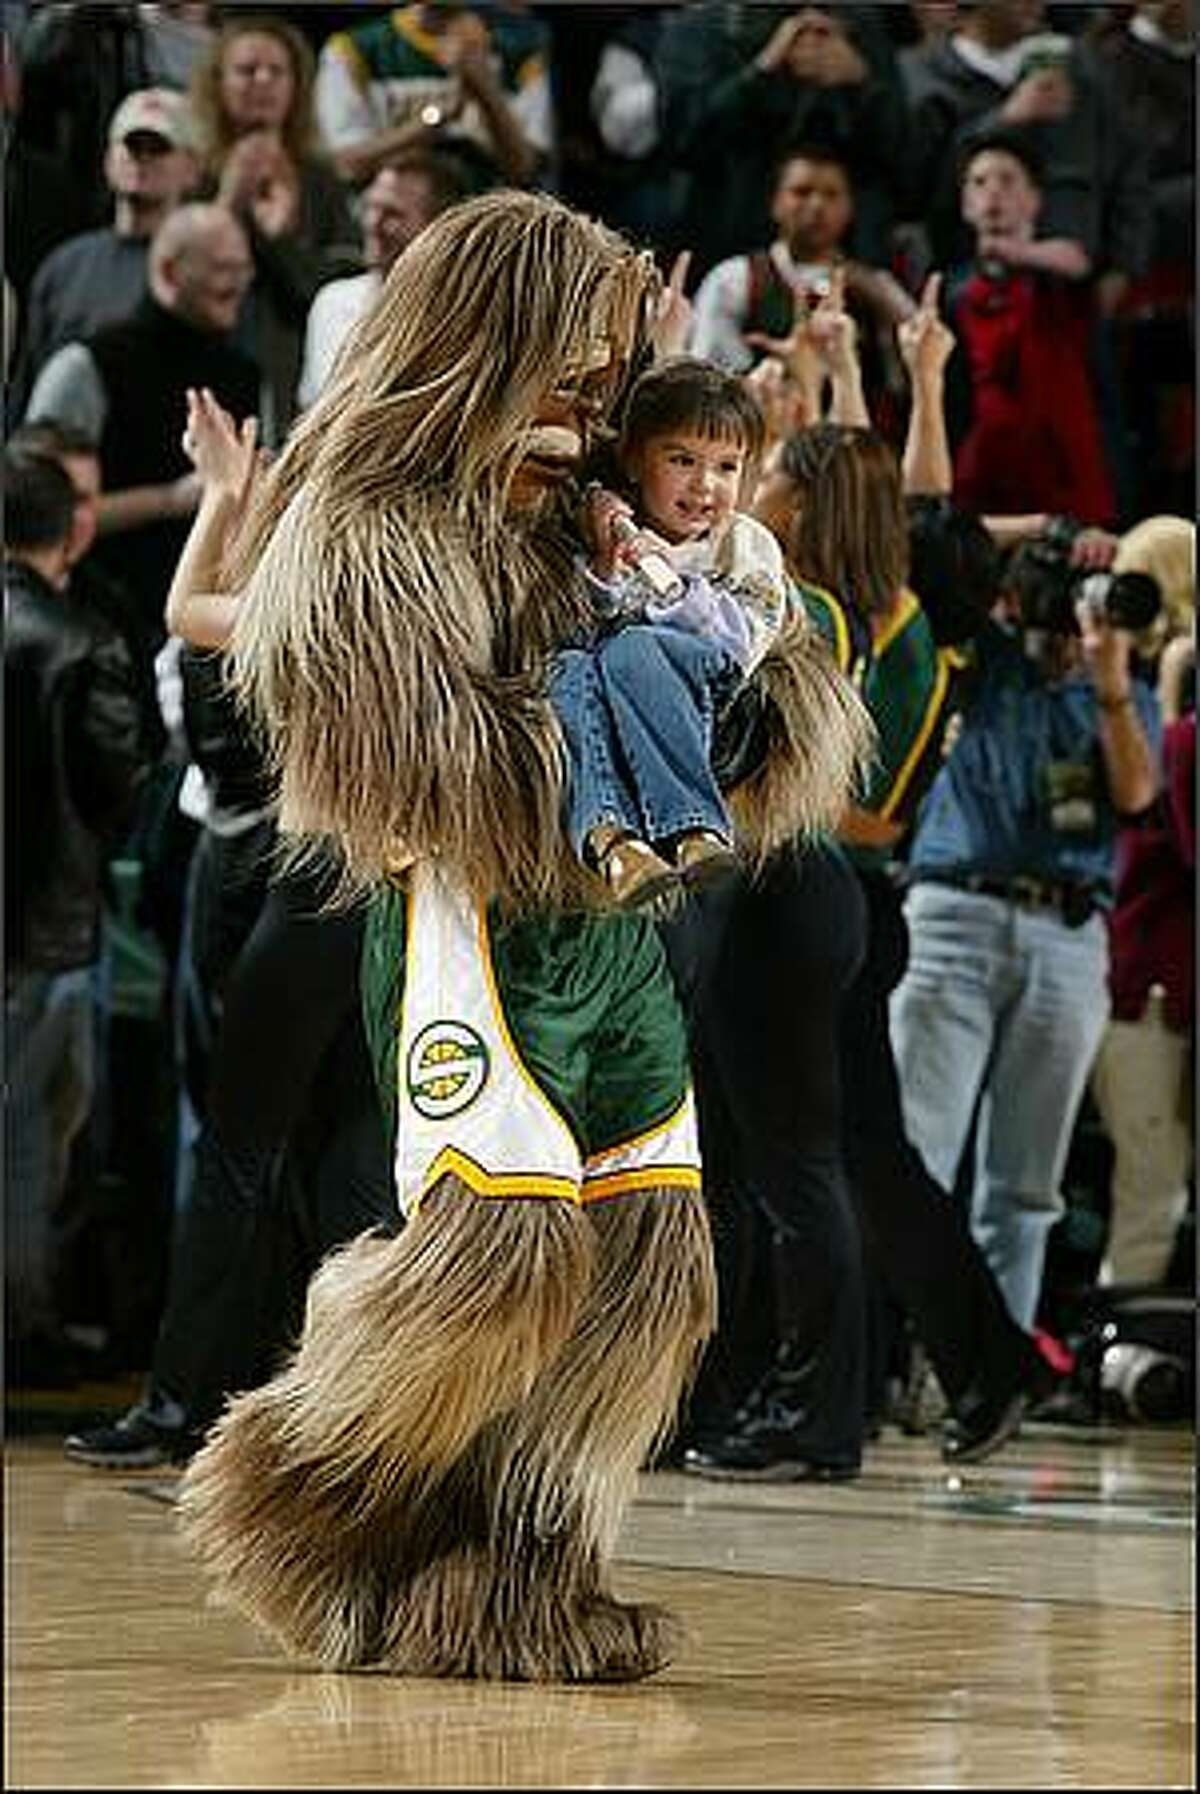 Sonics Mascot Squatch brings a young fan out onto the court during a break in the game between the Memphis Grizzlies and Seattle Sonics. March, 27 2002.